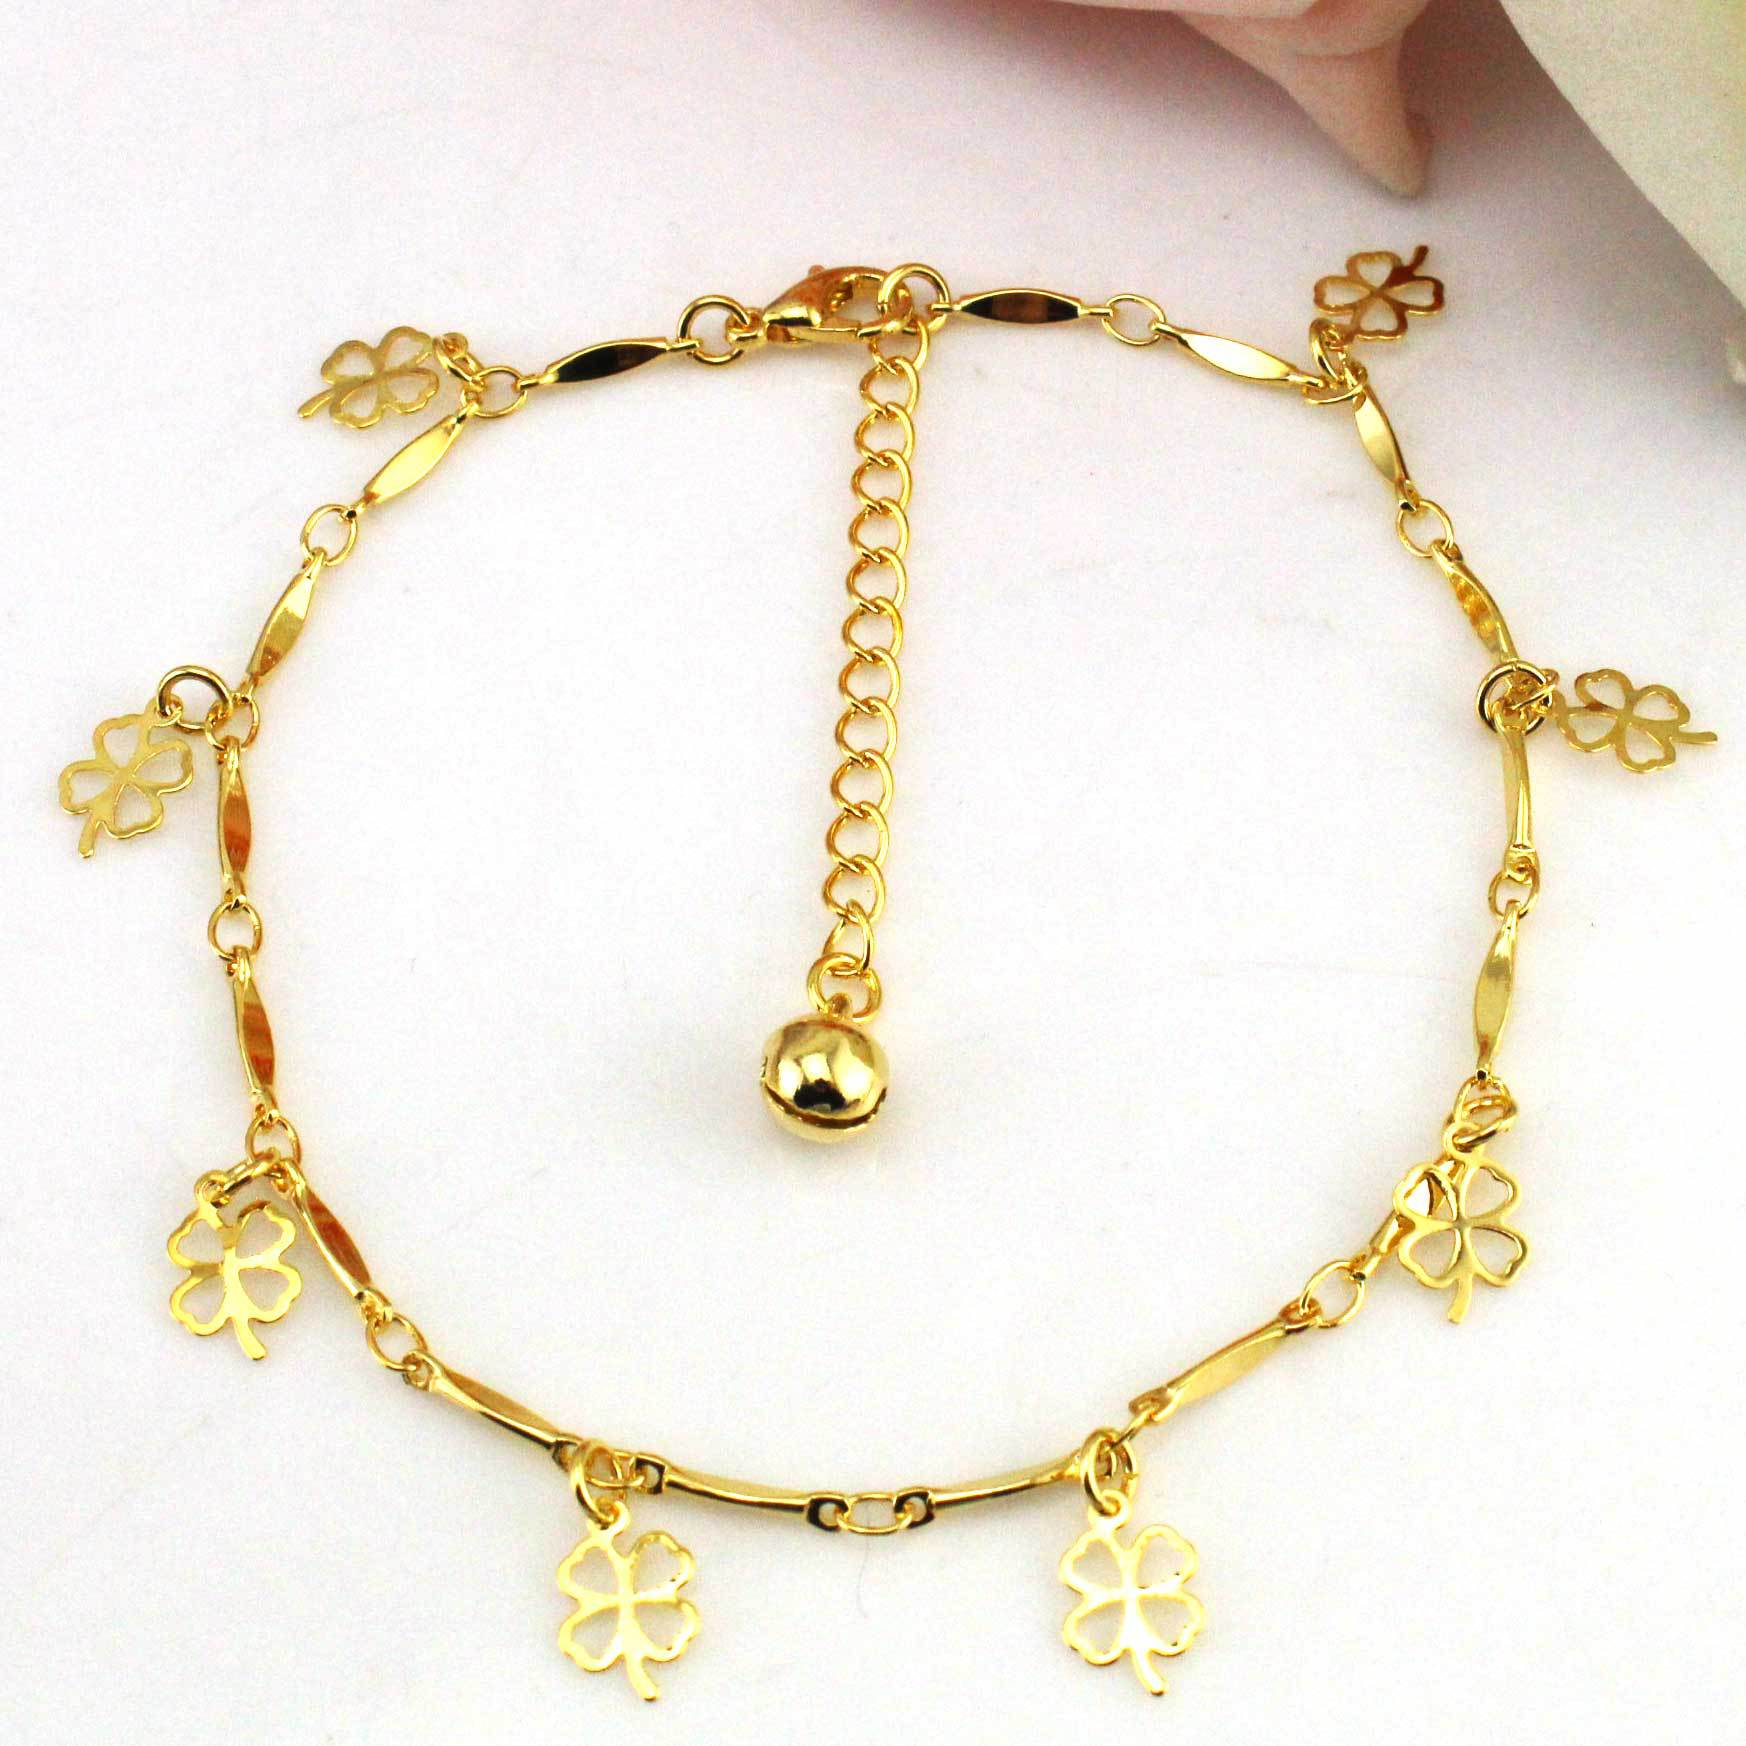 Gold Anklet Clover Cute Leg Bracelet Foot font b Jewelry b font Ankle Bracelets for Women